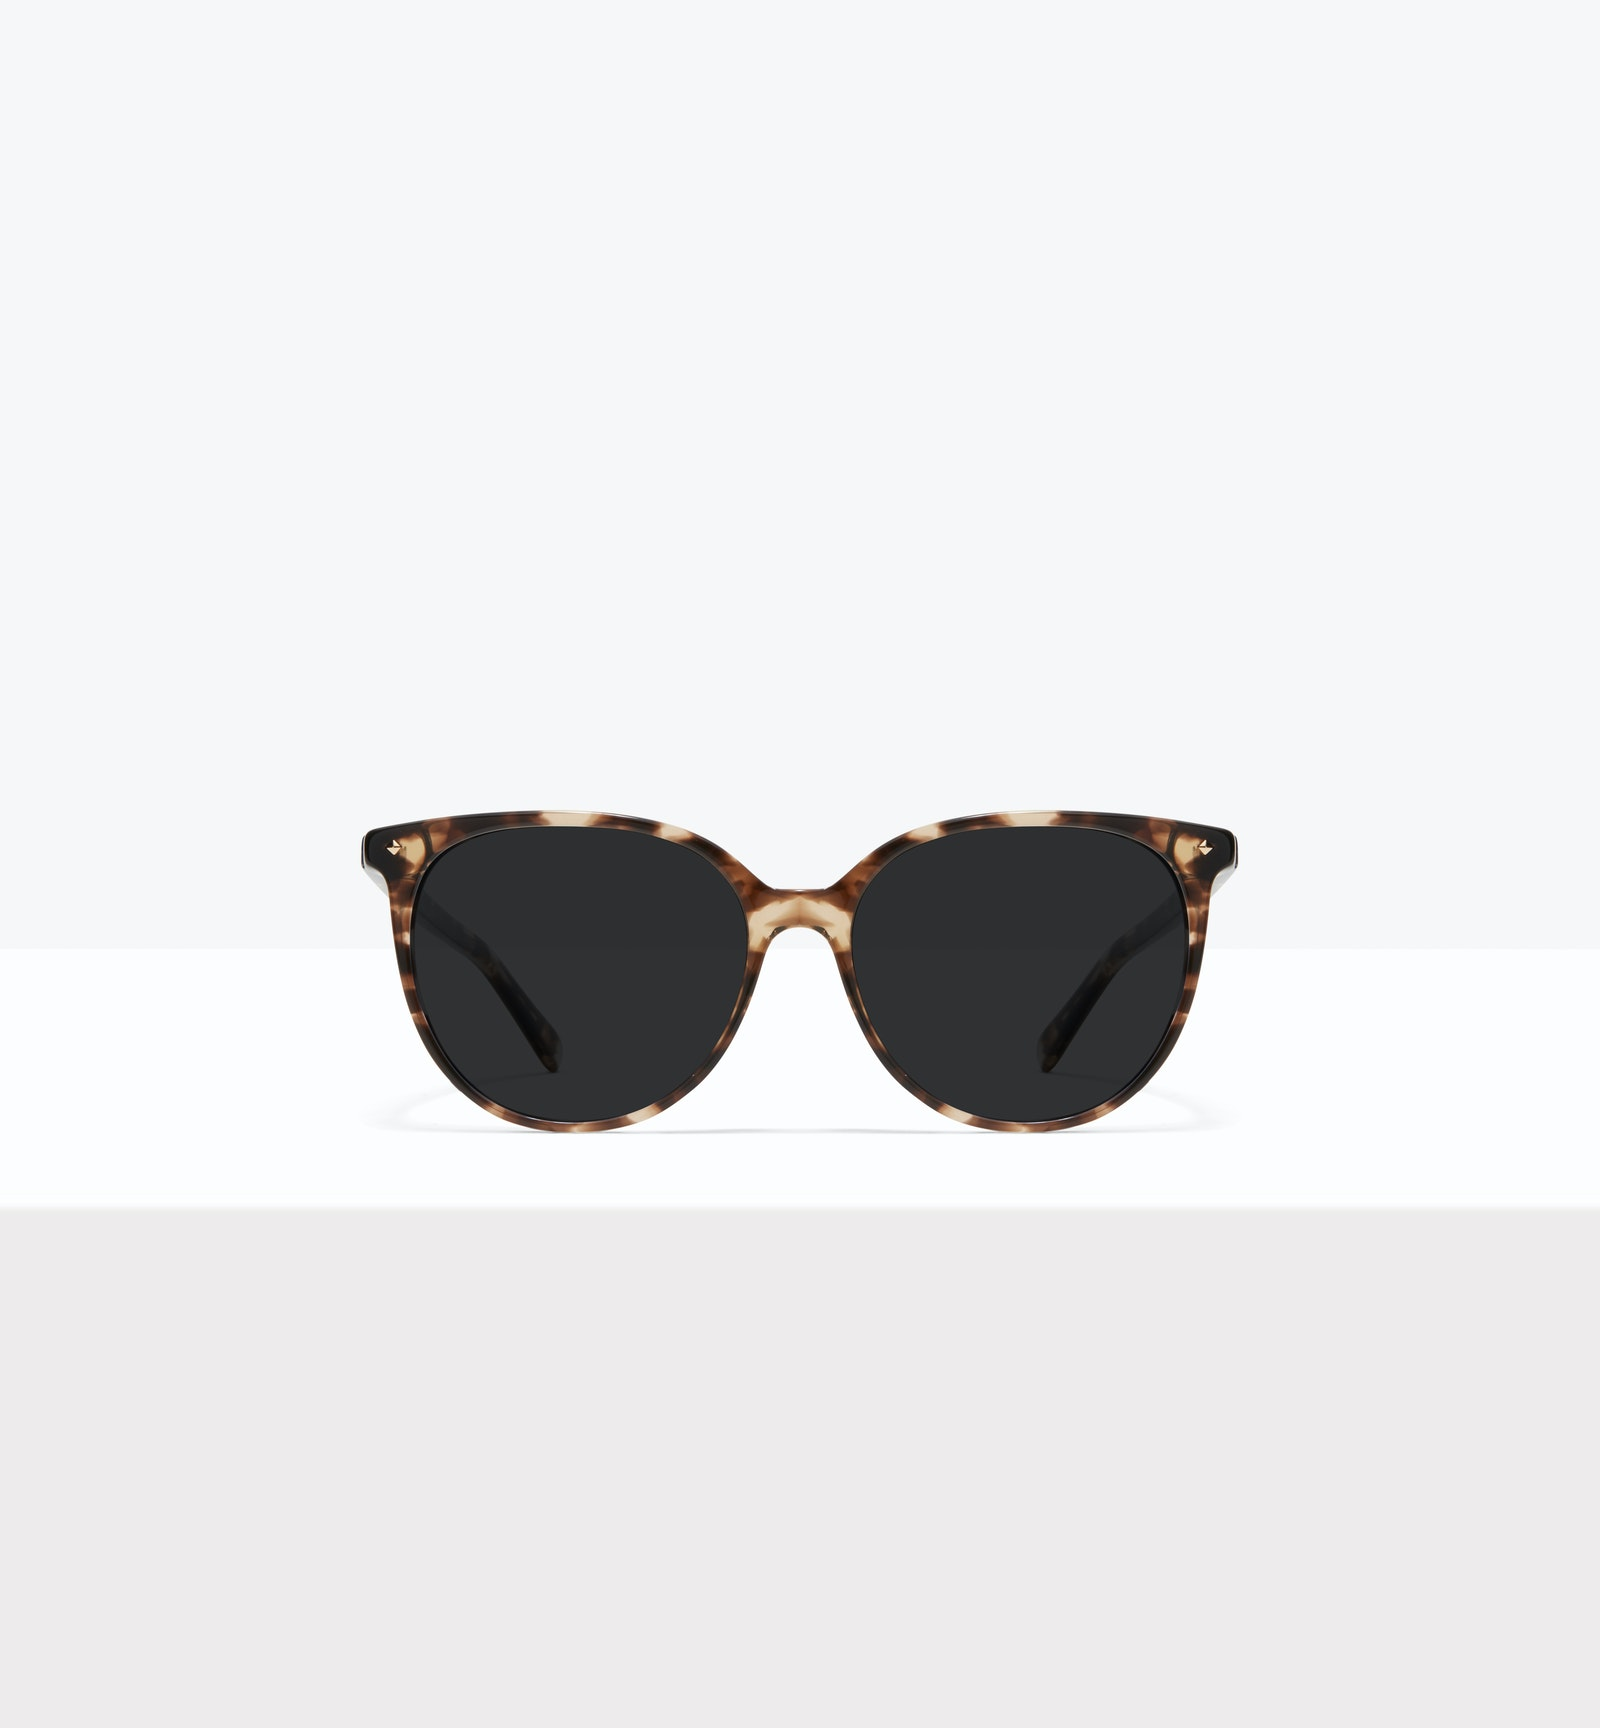 Affordable Fashion Glasses Round Sunglasses Women Area S Leopard